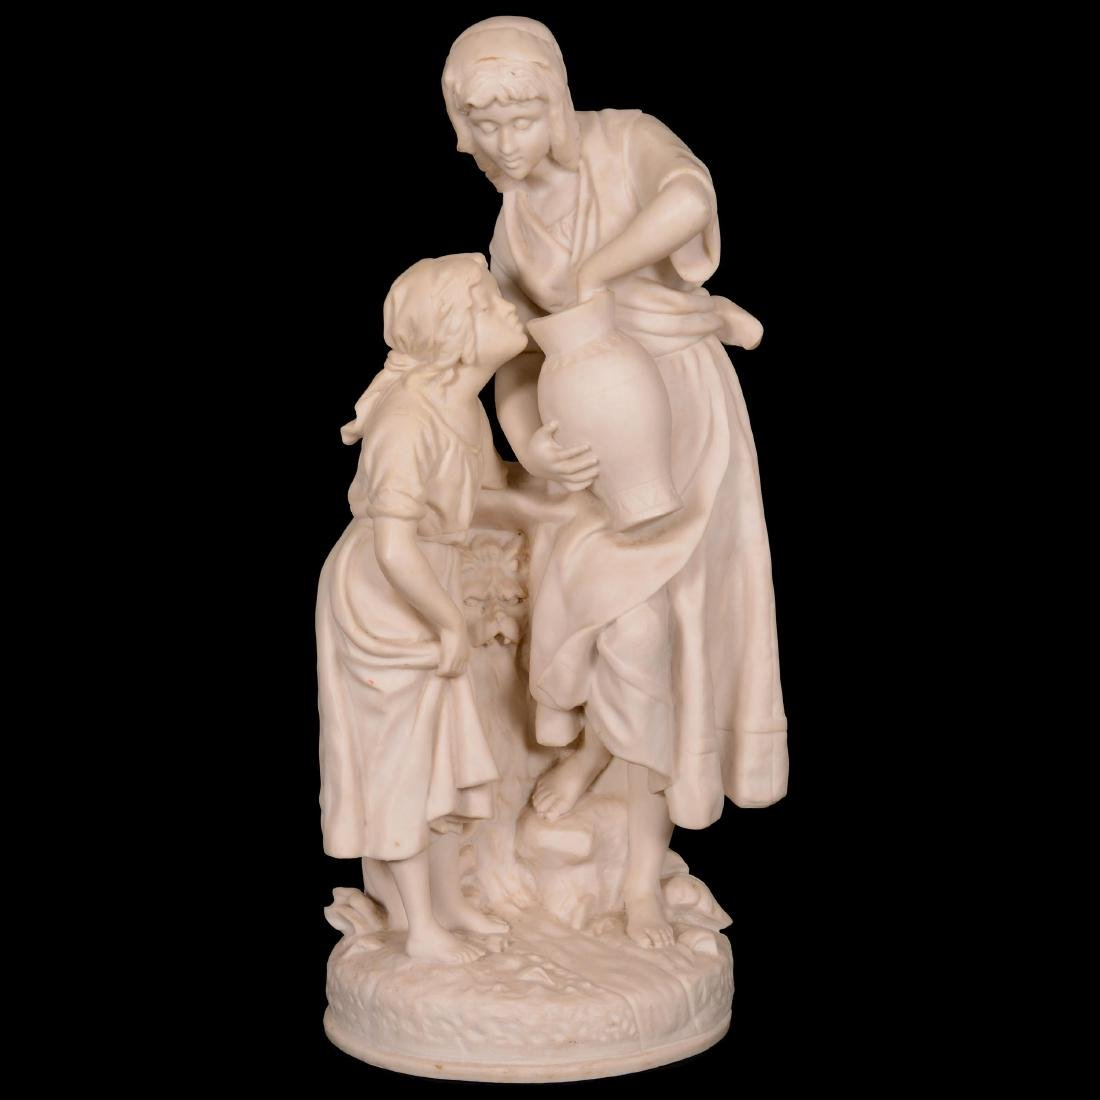 French Marble Statue by Joseph Carlier (1849-1927) Know